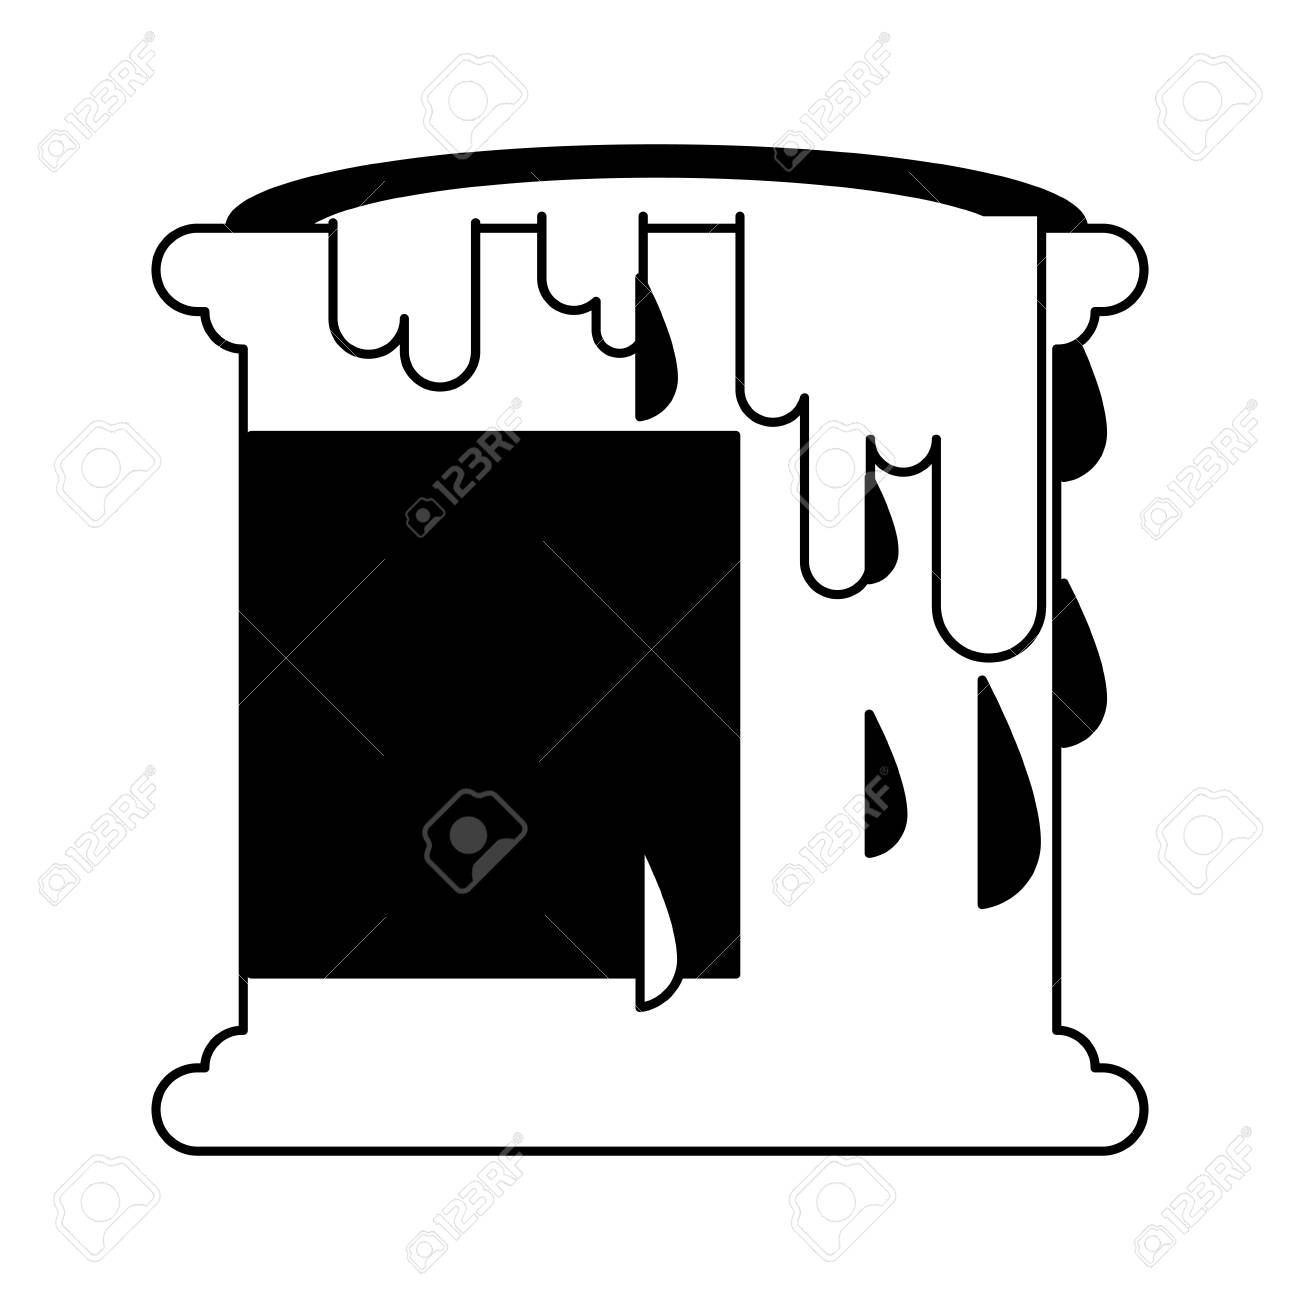 Paint Bucket Isolated Vector Illustration Graphic Design Royalty Free Cliparts Vectors And Stock Illustration Image 112049305